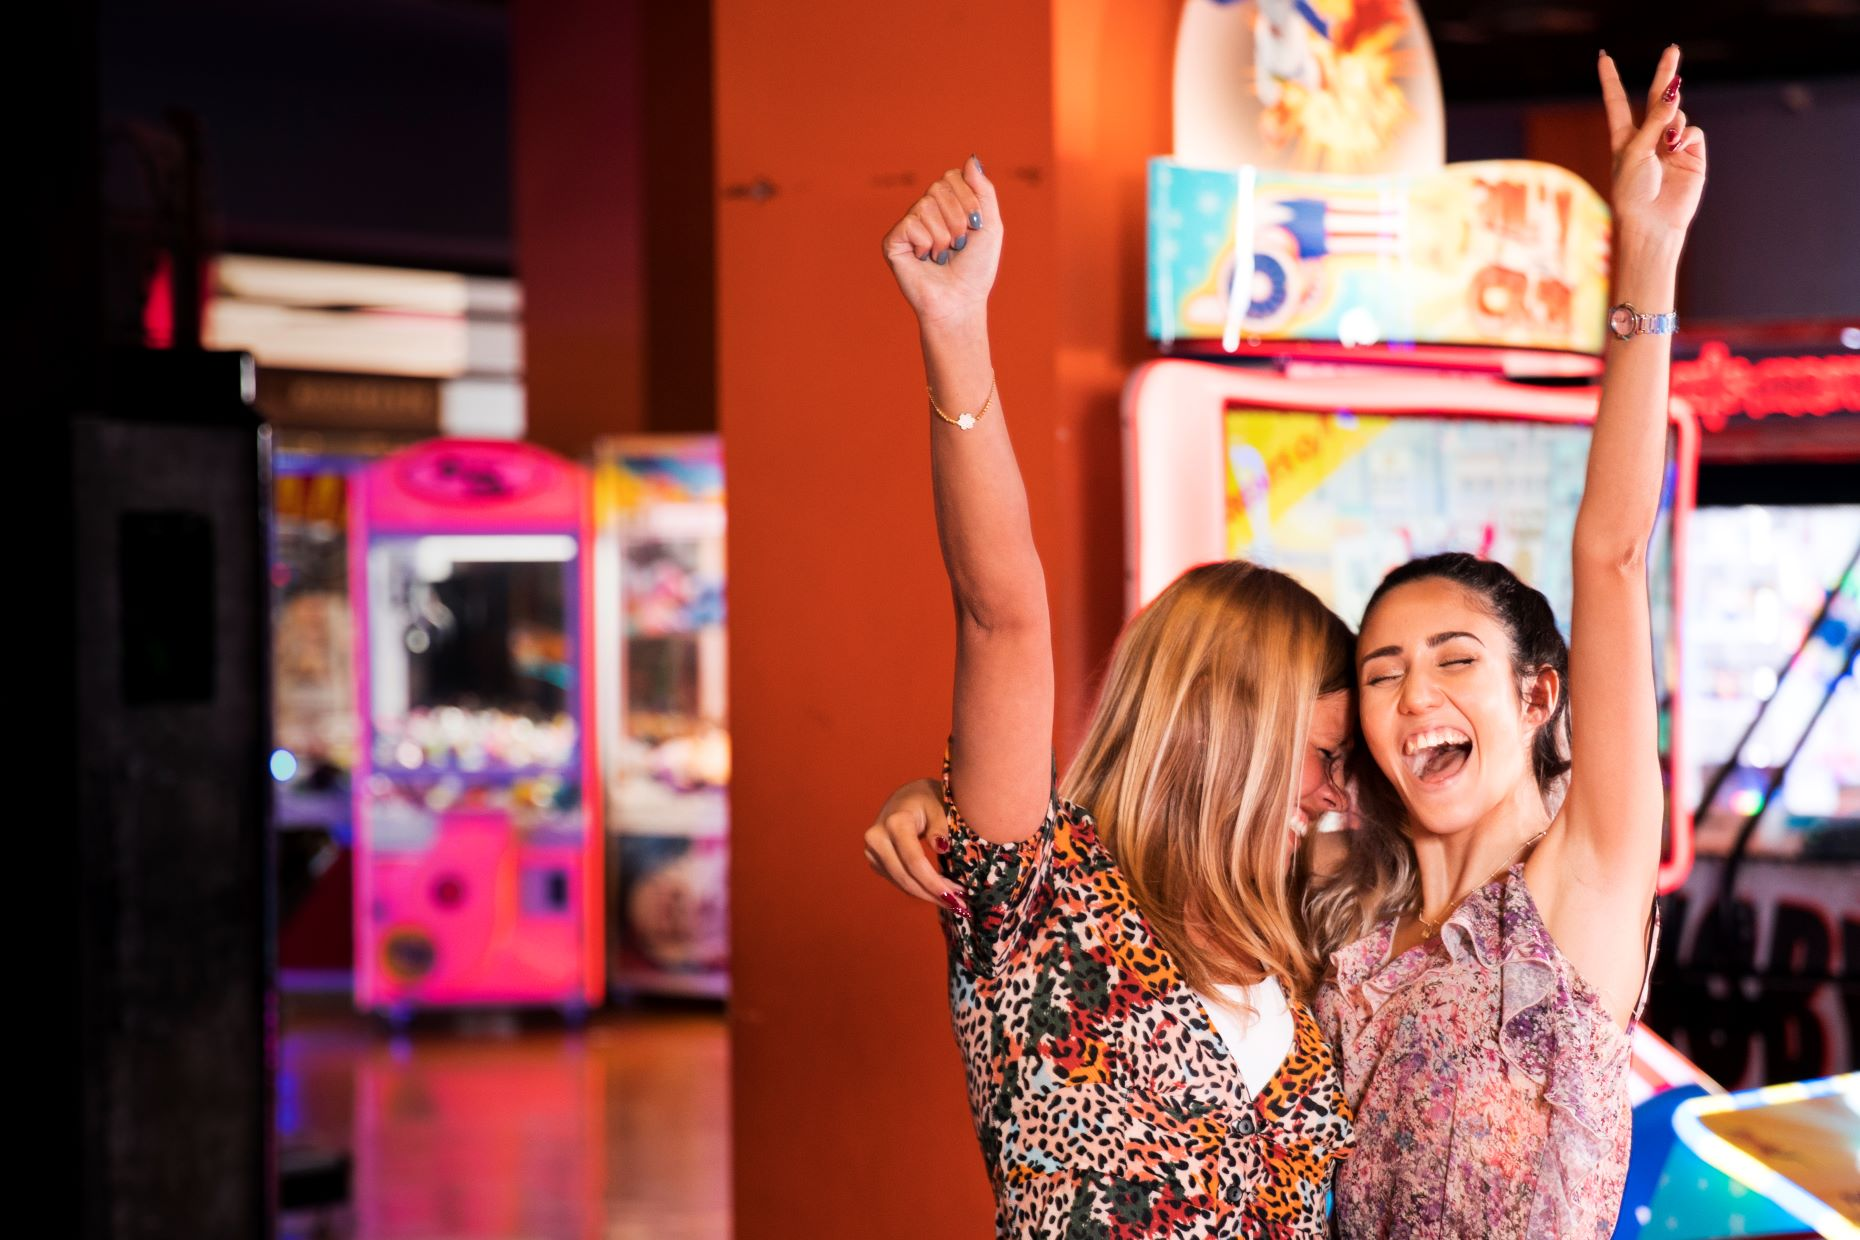 Two women at a family fun center having fun and raising hands in celebration